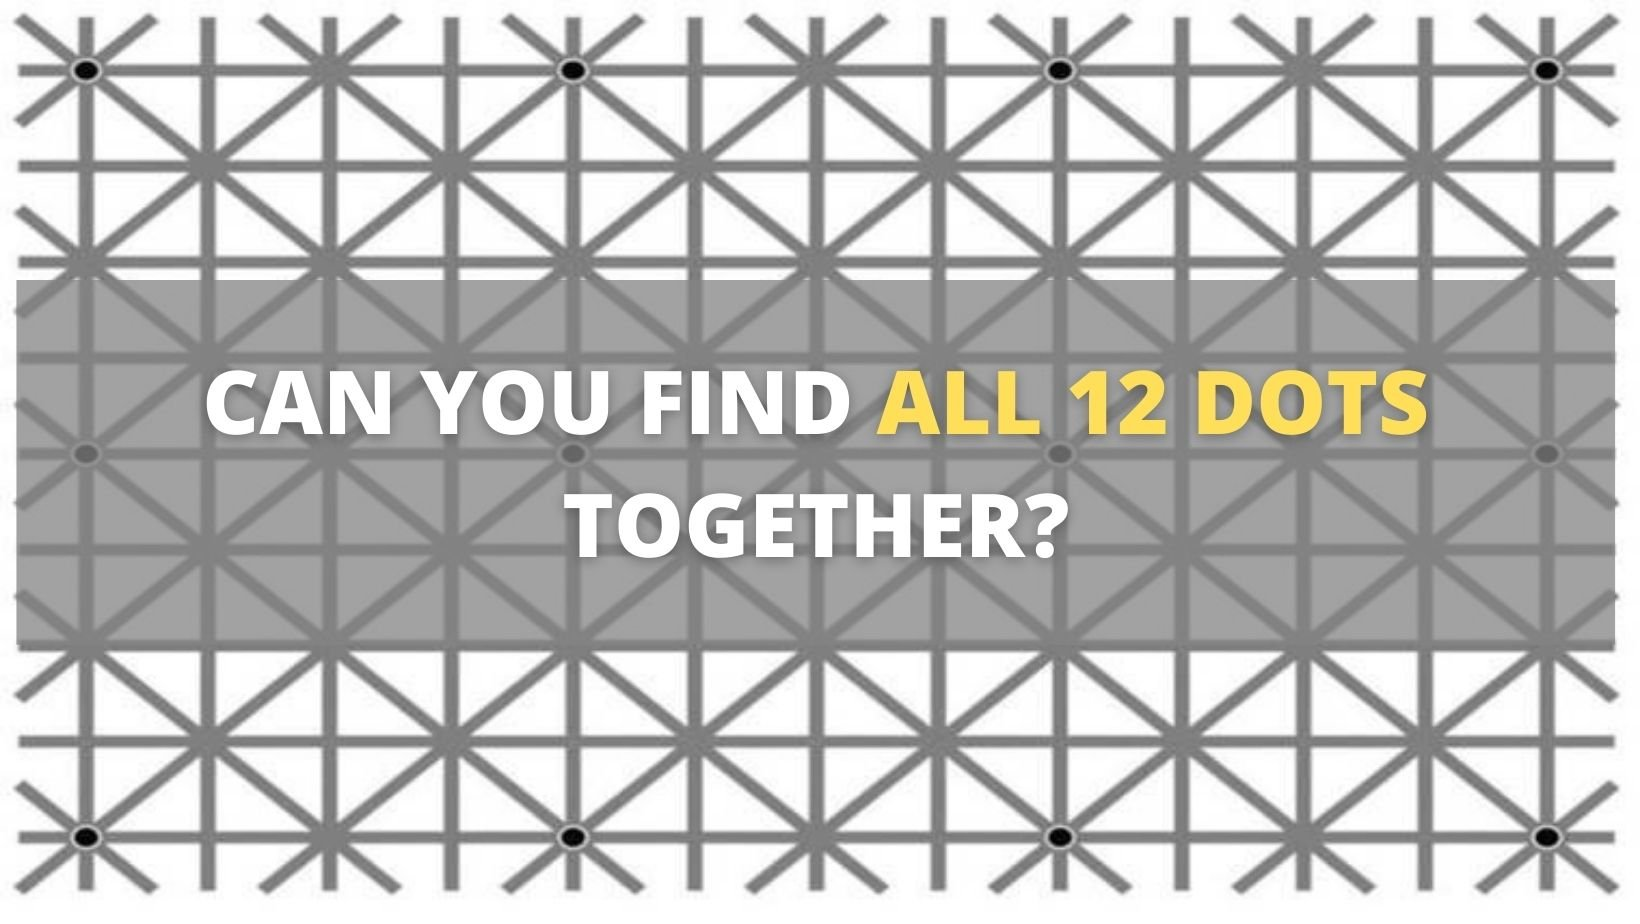 small joys thumbnail 2 5.jpg?resize=1200,630 - We Bet That You Can't See ALL 12 DOTS In This Image